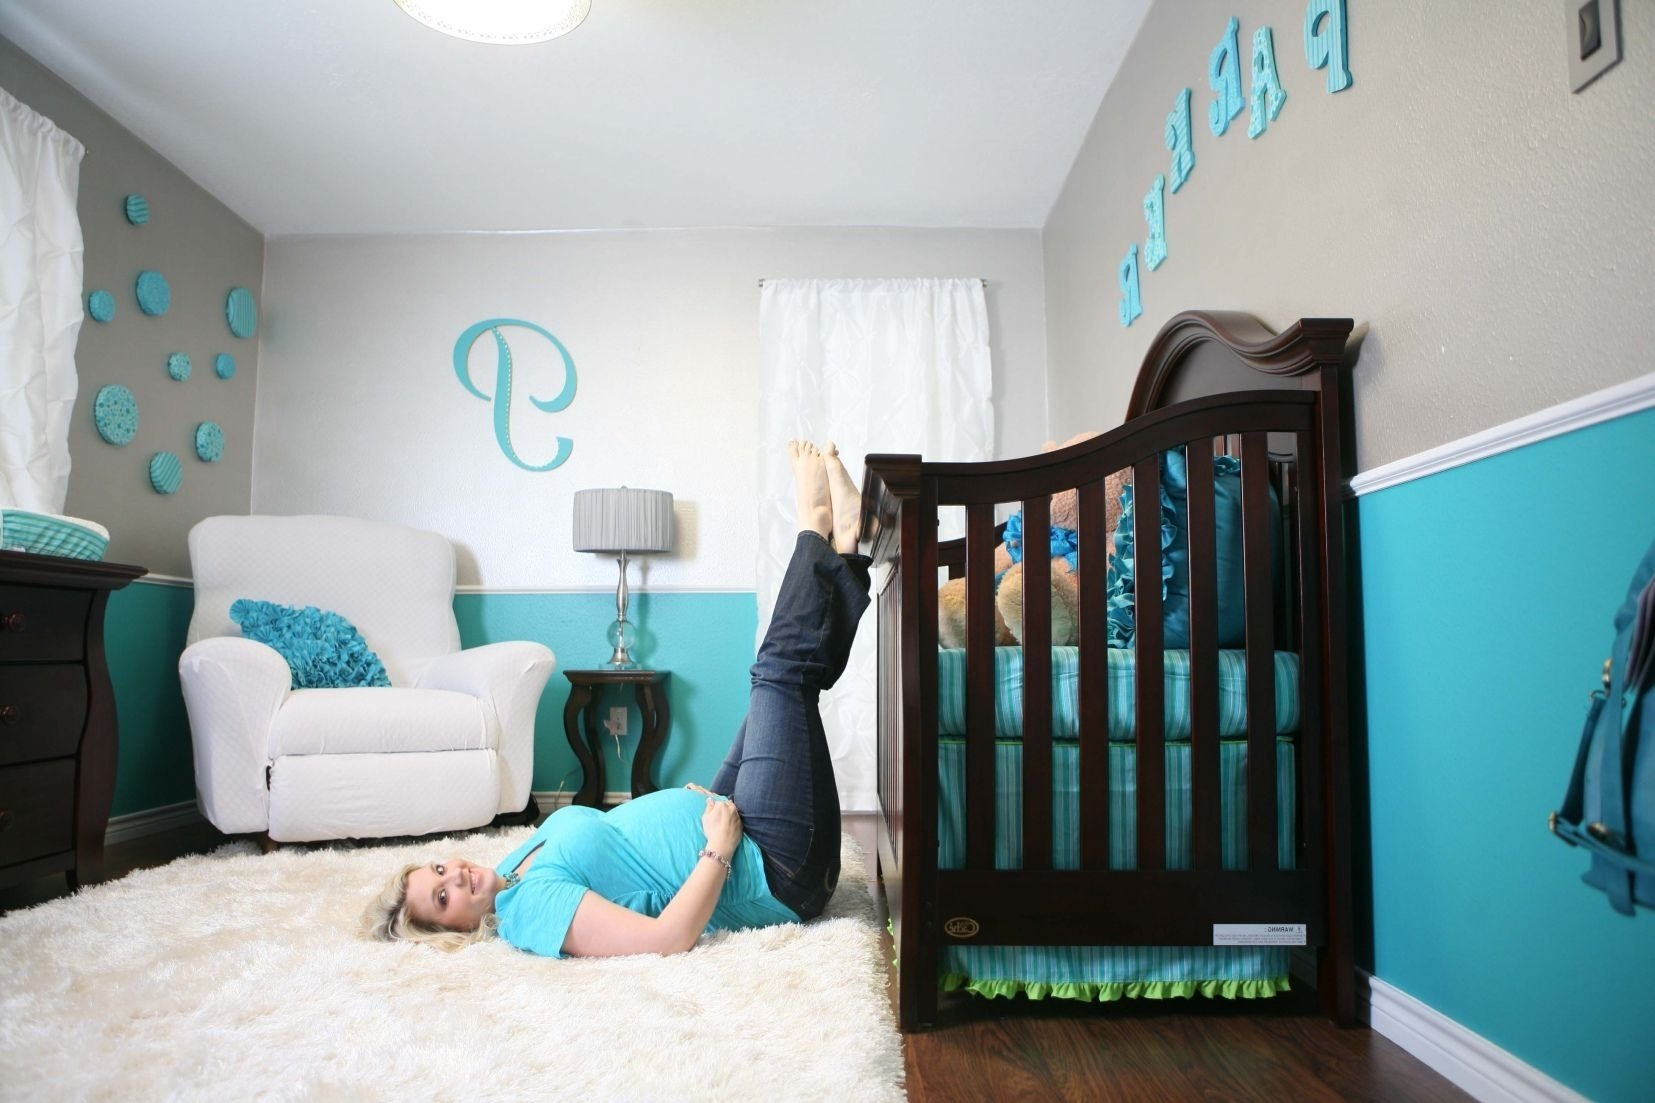 10 Great Baby Room Ideas For A Boy 99 baby room ideas boy ideas to divide a bedroom check more at 2020